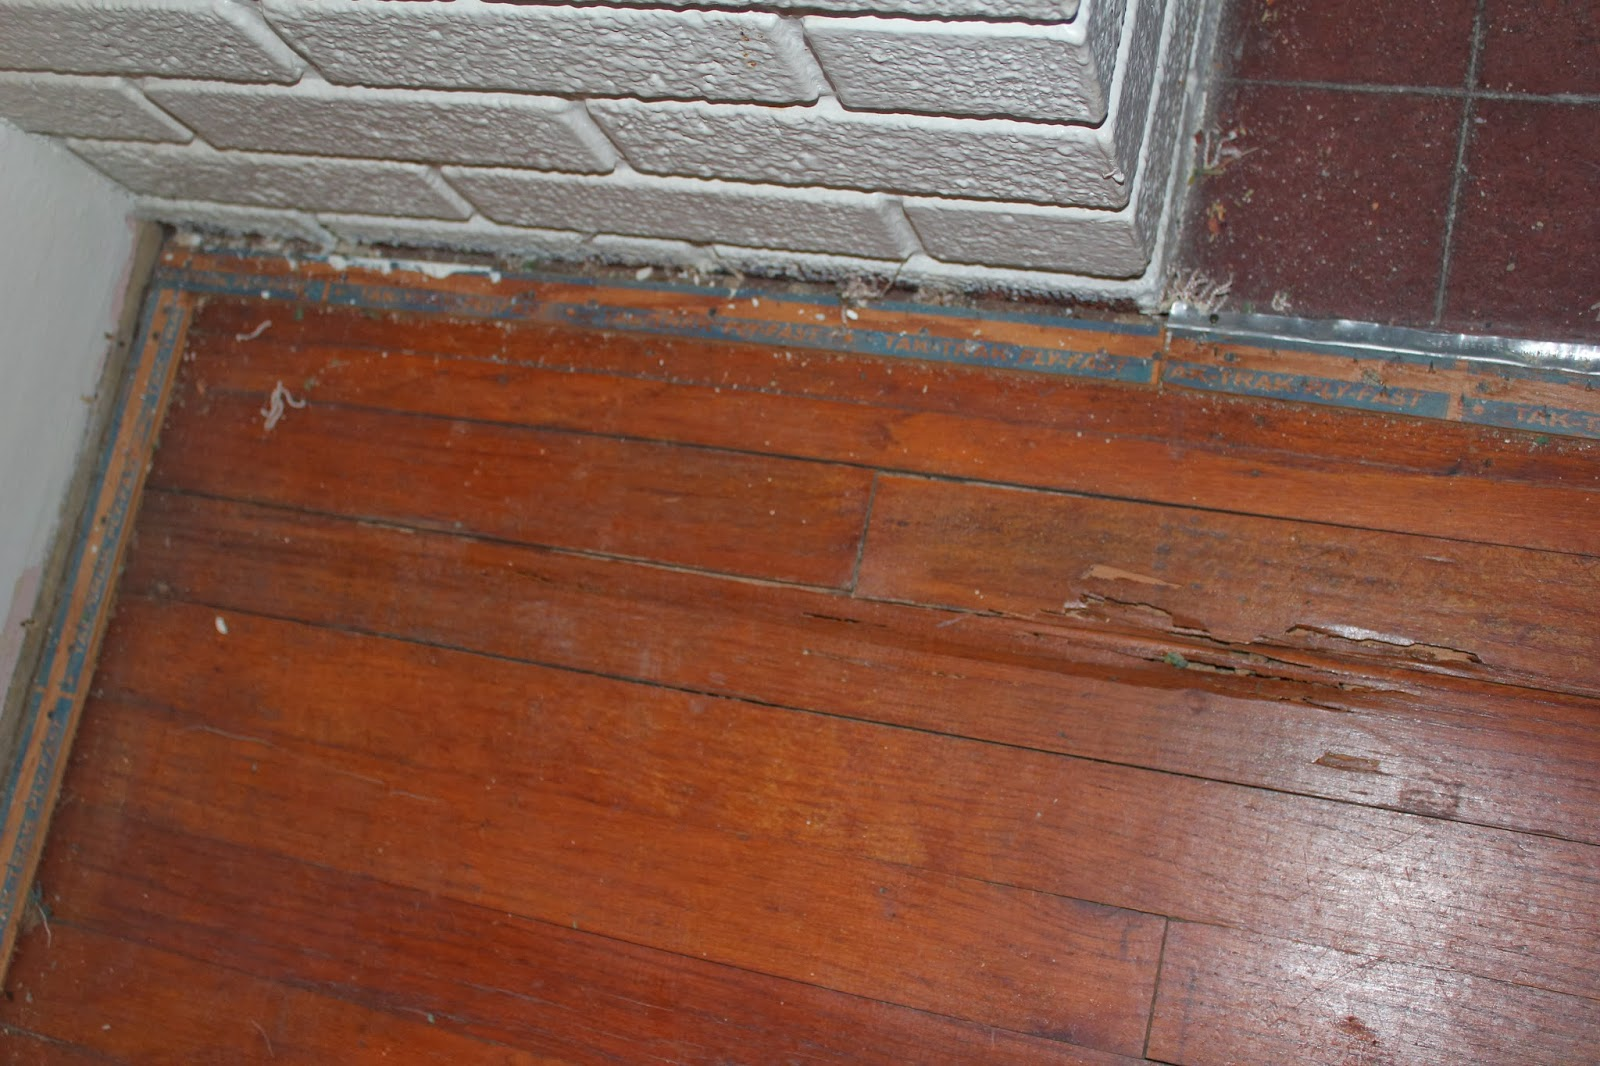 Termite Damage On Wood Floors Pictures